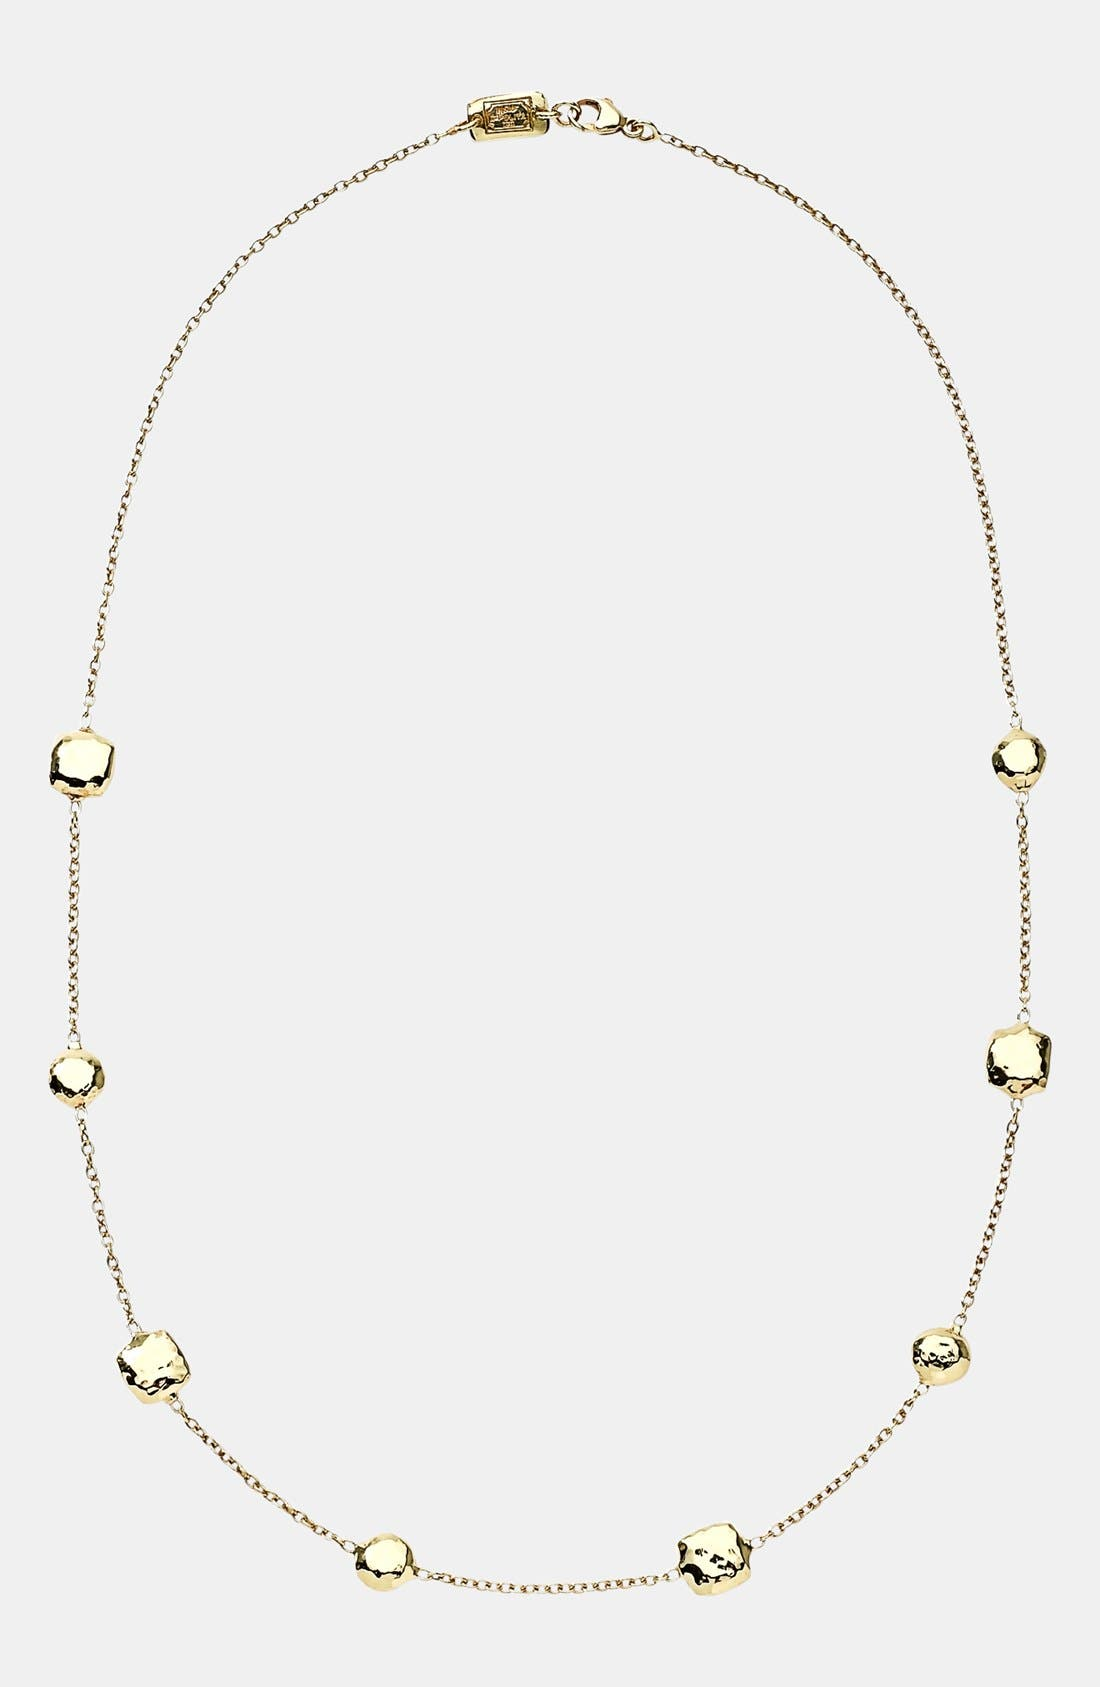 'Glamazon' 18k Gold Station Necklace,                             Alternate thumbnail 2, color,                             YELLOW GOLD